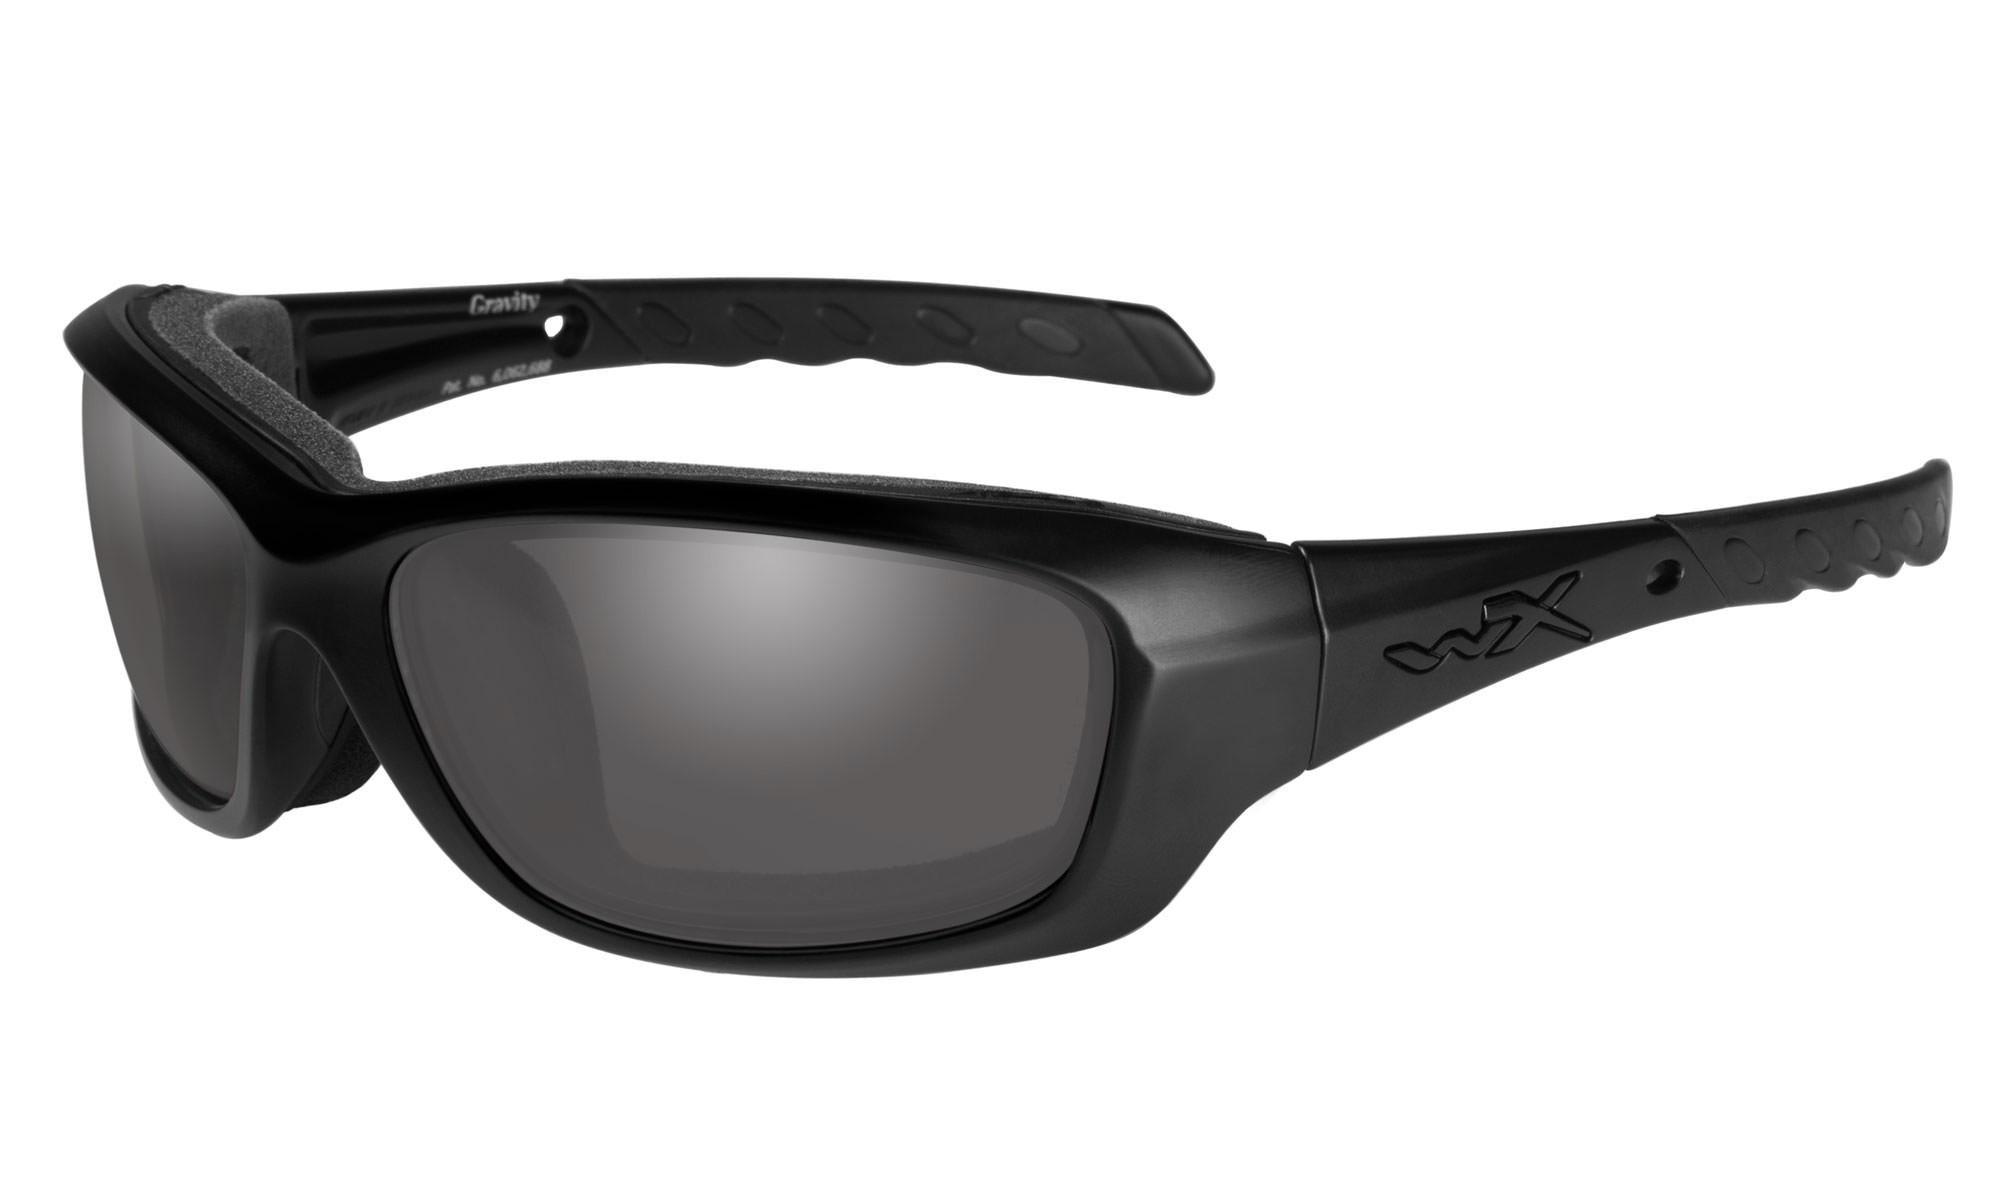 d18ac4d75a1f Wiley-X WX Gravity Matte Black with Smoke Grey Lenses | Wiley X